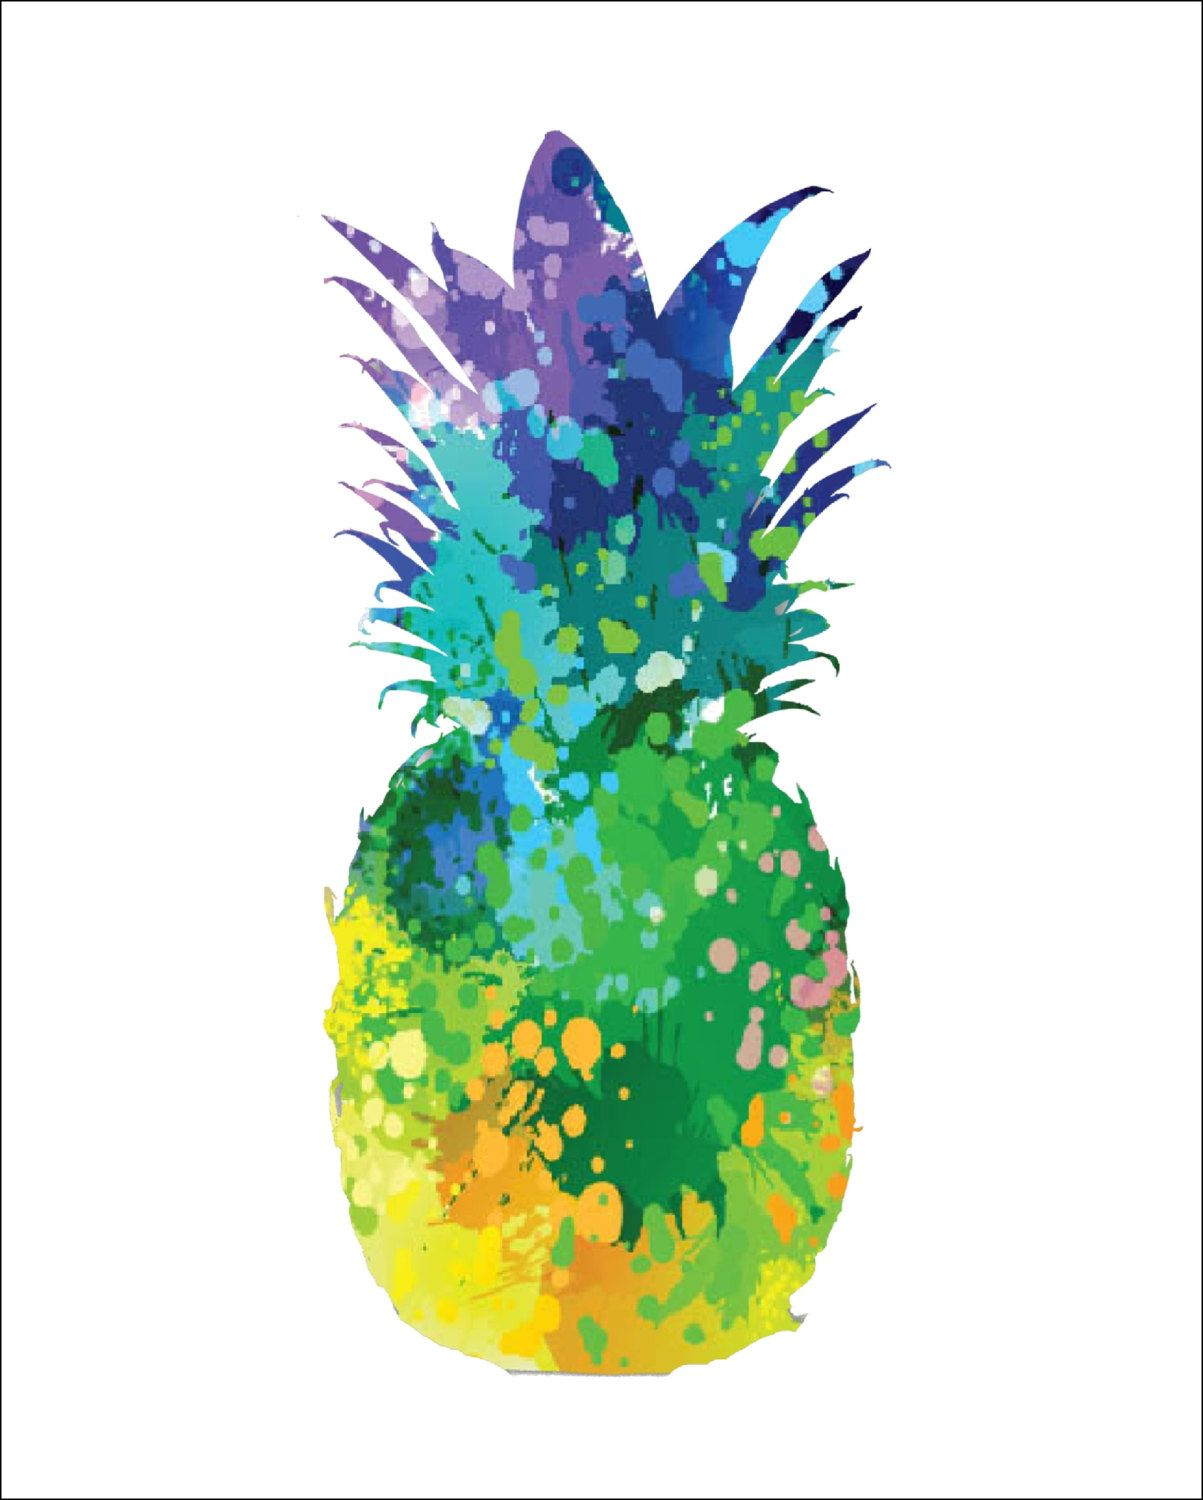 e0833d1be PINEAPPLE Archival Art Print 8 x 10 Multi-color Watercolor Silhouette  Painting Pineapple Print Wall Decor Home or Office, Kitchen or Gift by ...